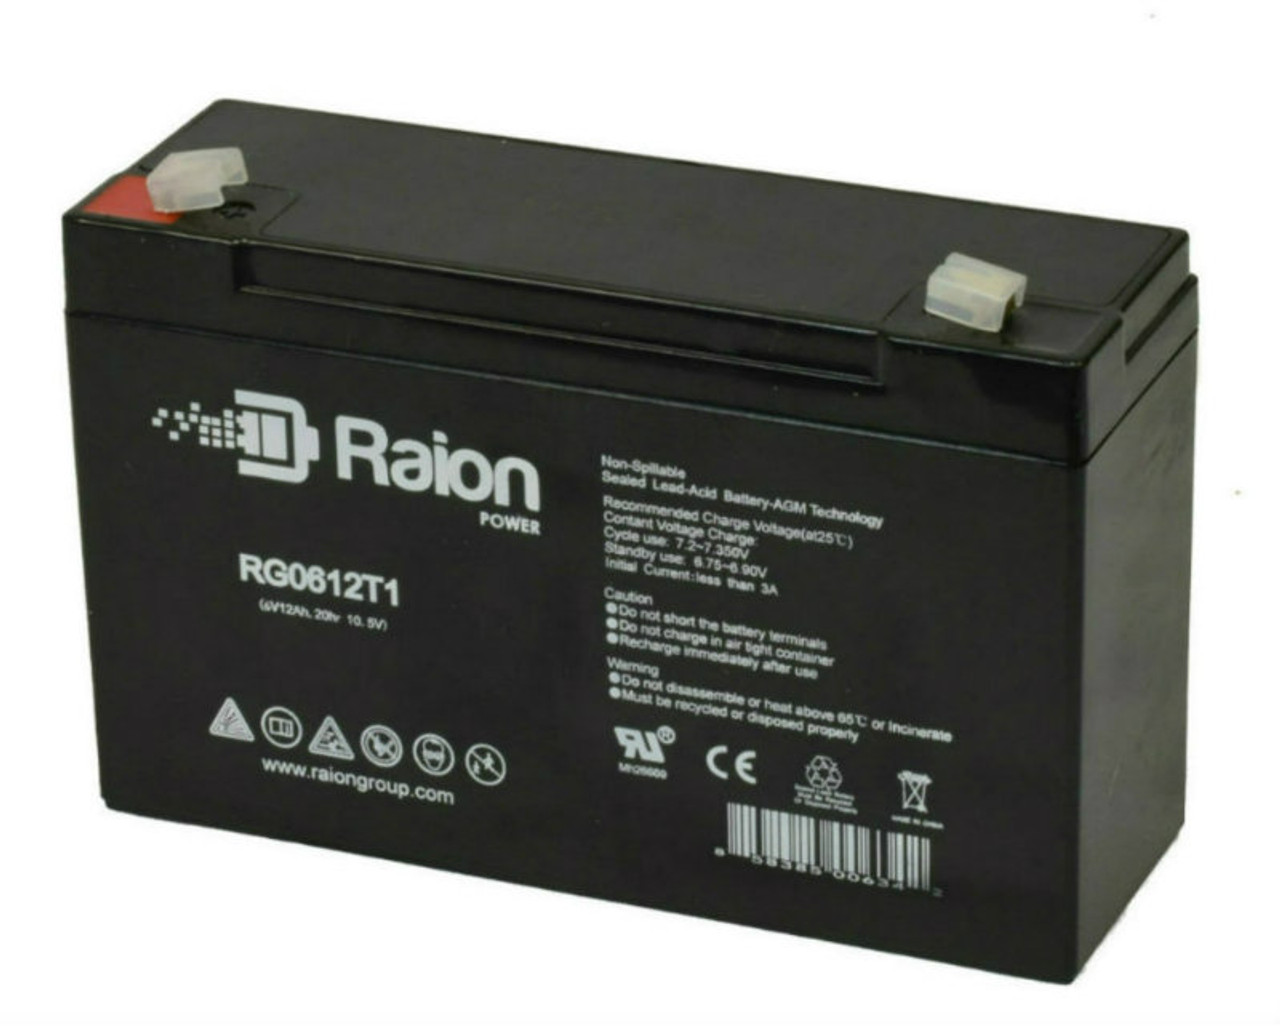 Raion Power RG06120T1 Replacement Battery Pack for Teledyne 2ET6S8 emergency light